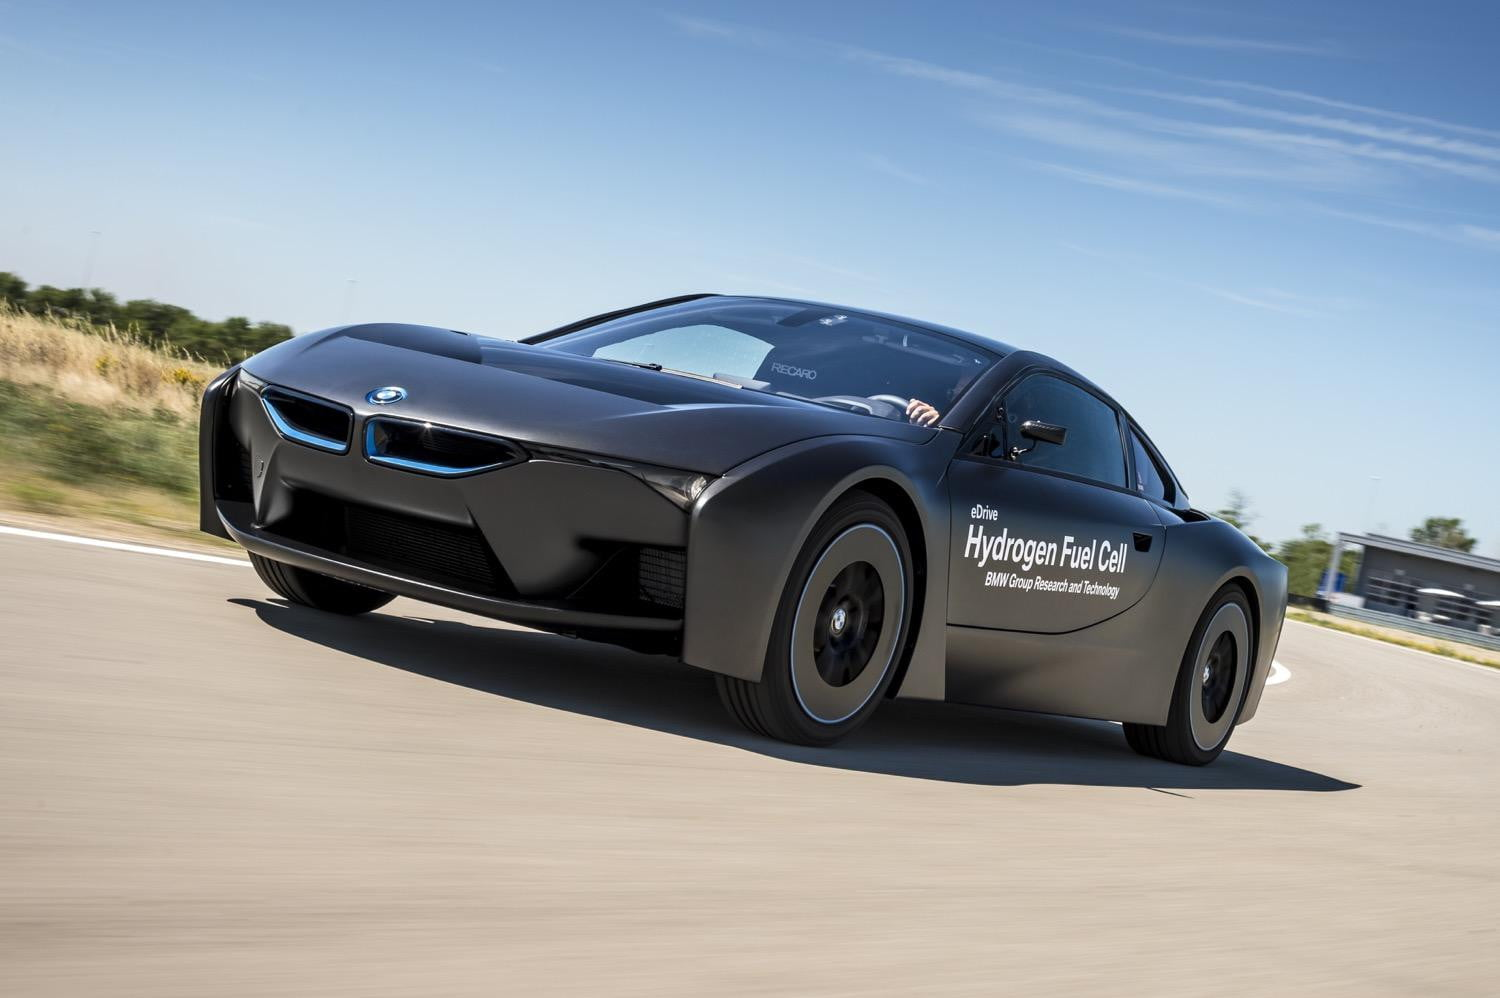 BMW Will Launch Hydrogen Fuel Cell Cars Soon, Report Says